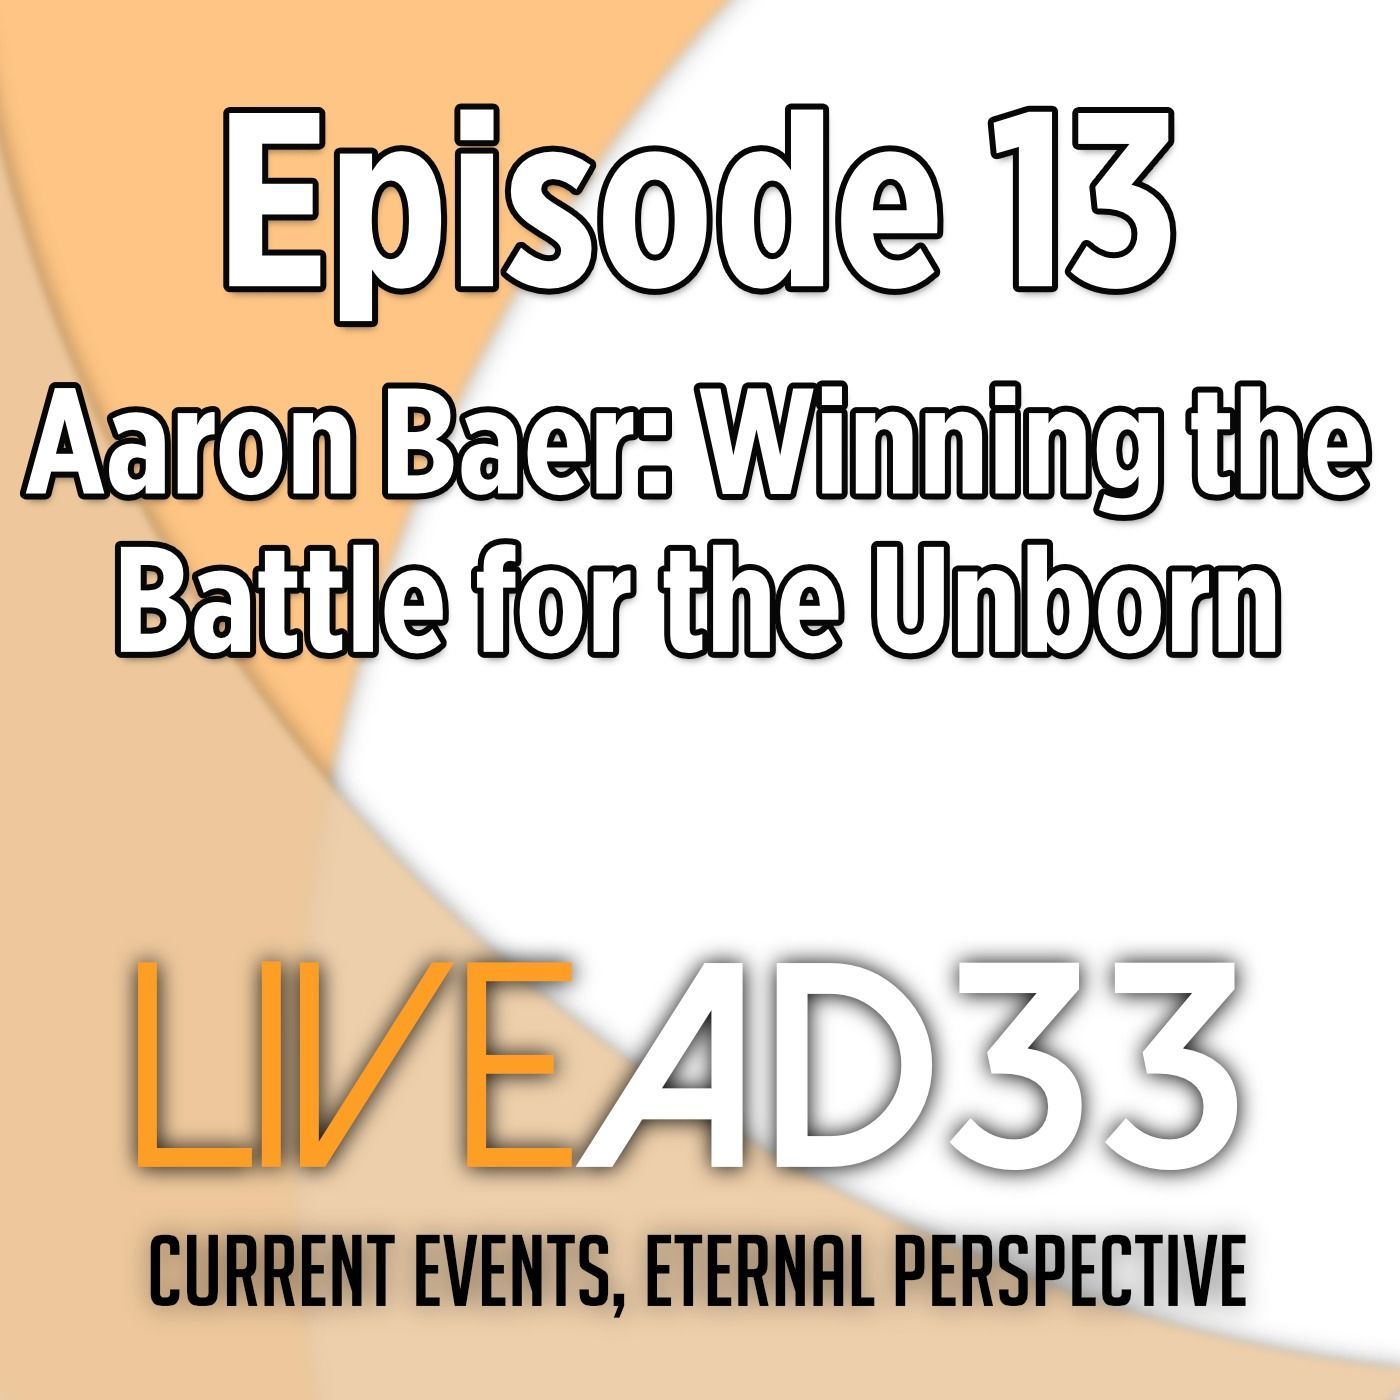 Aaron Baer: Winning the Battle for the Unborn